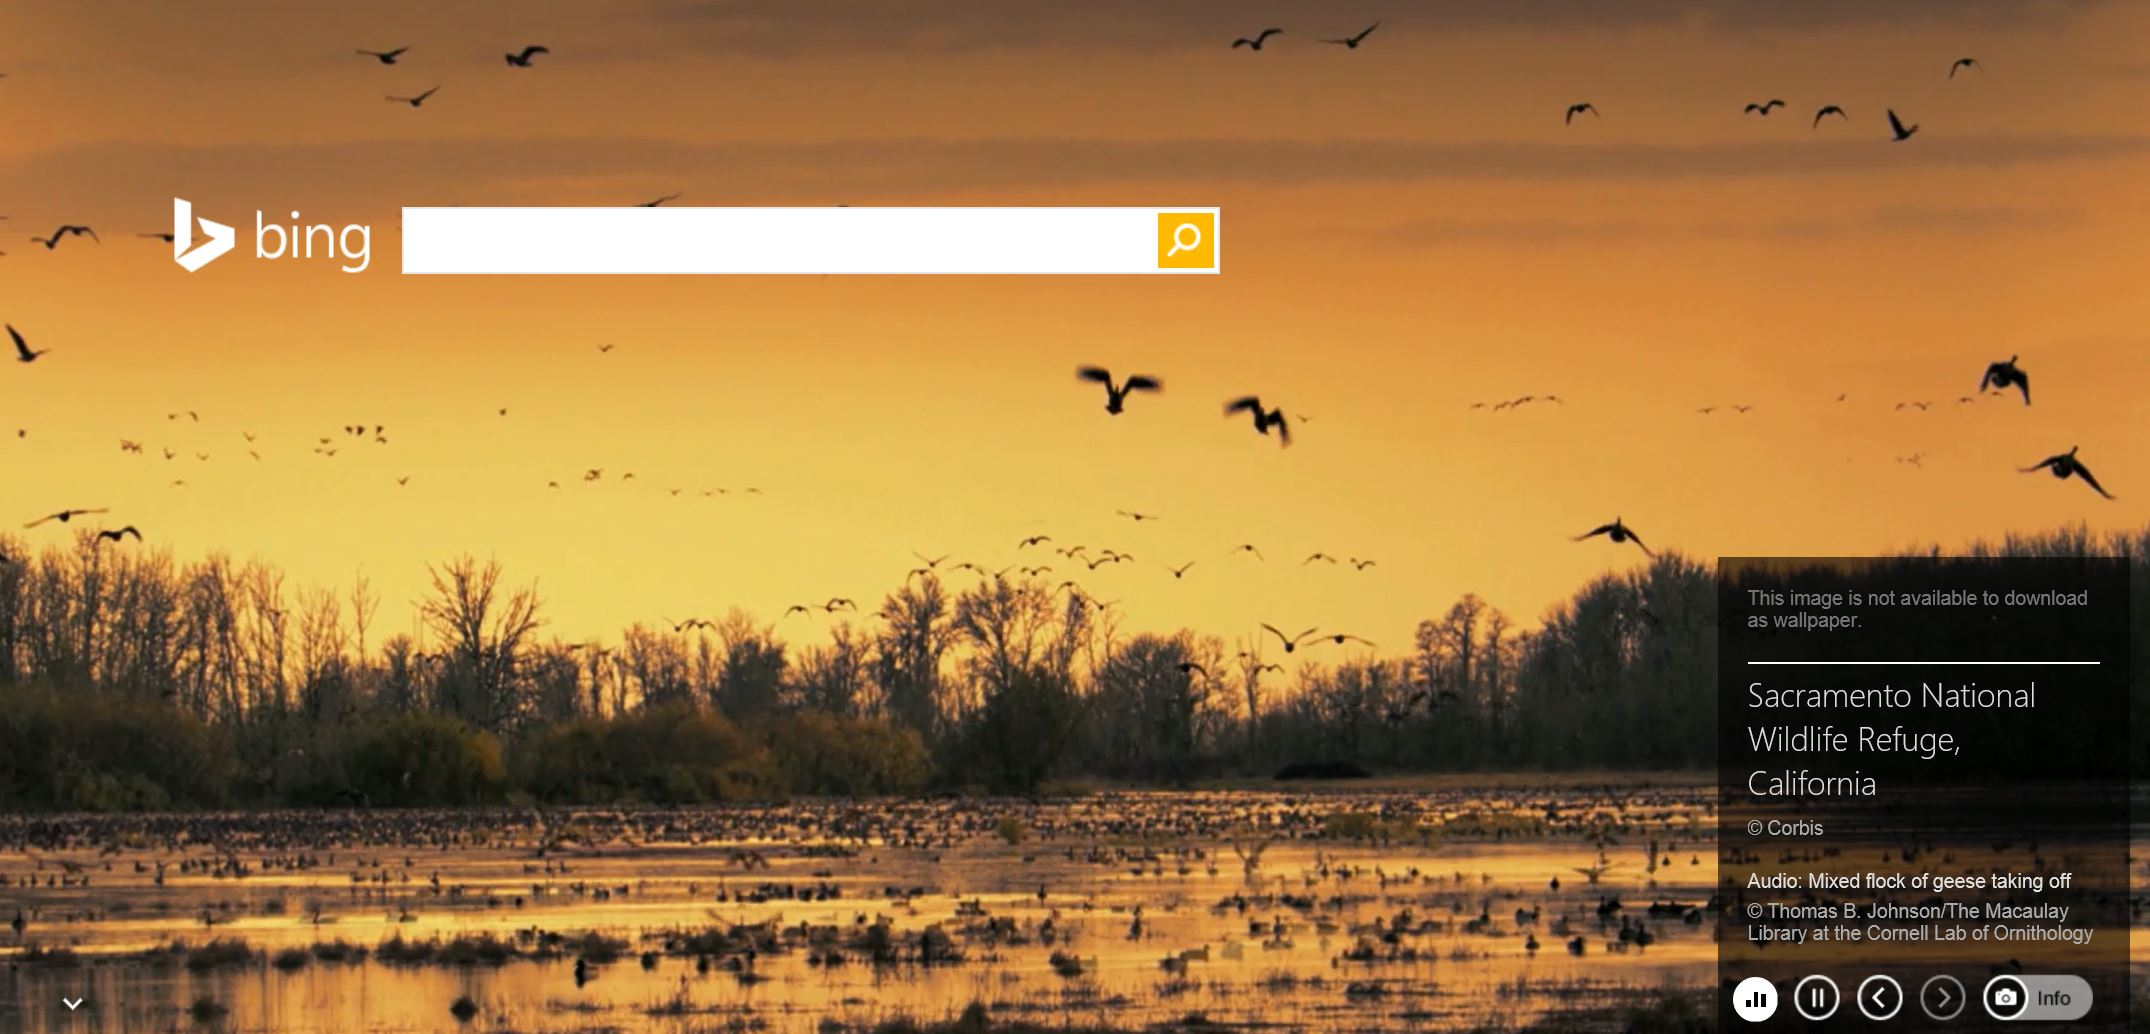 Bing mostrando el Sacramento National Wildlife Refuge de California